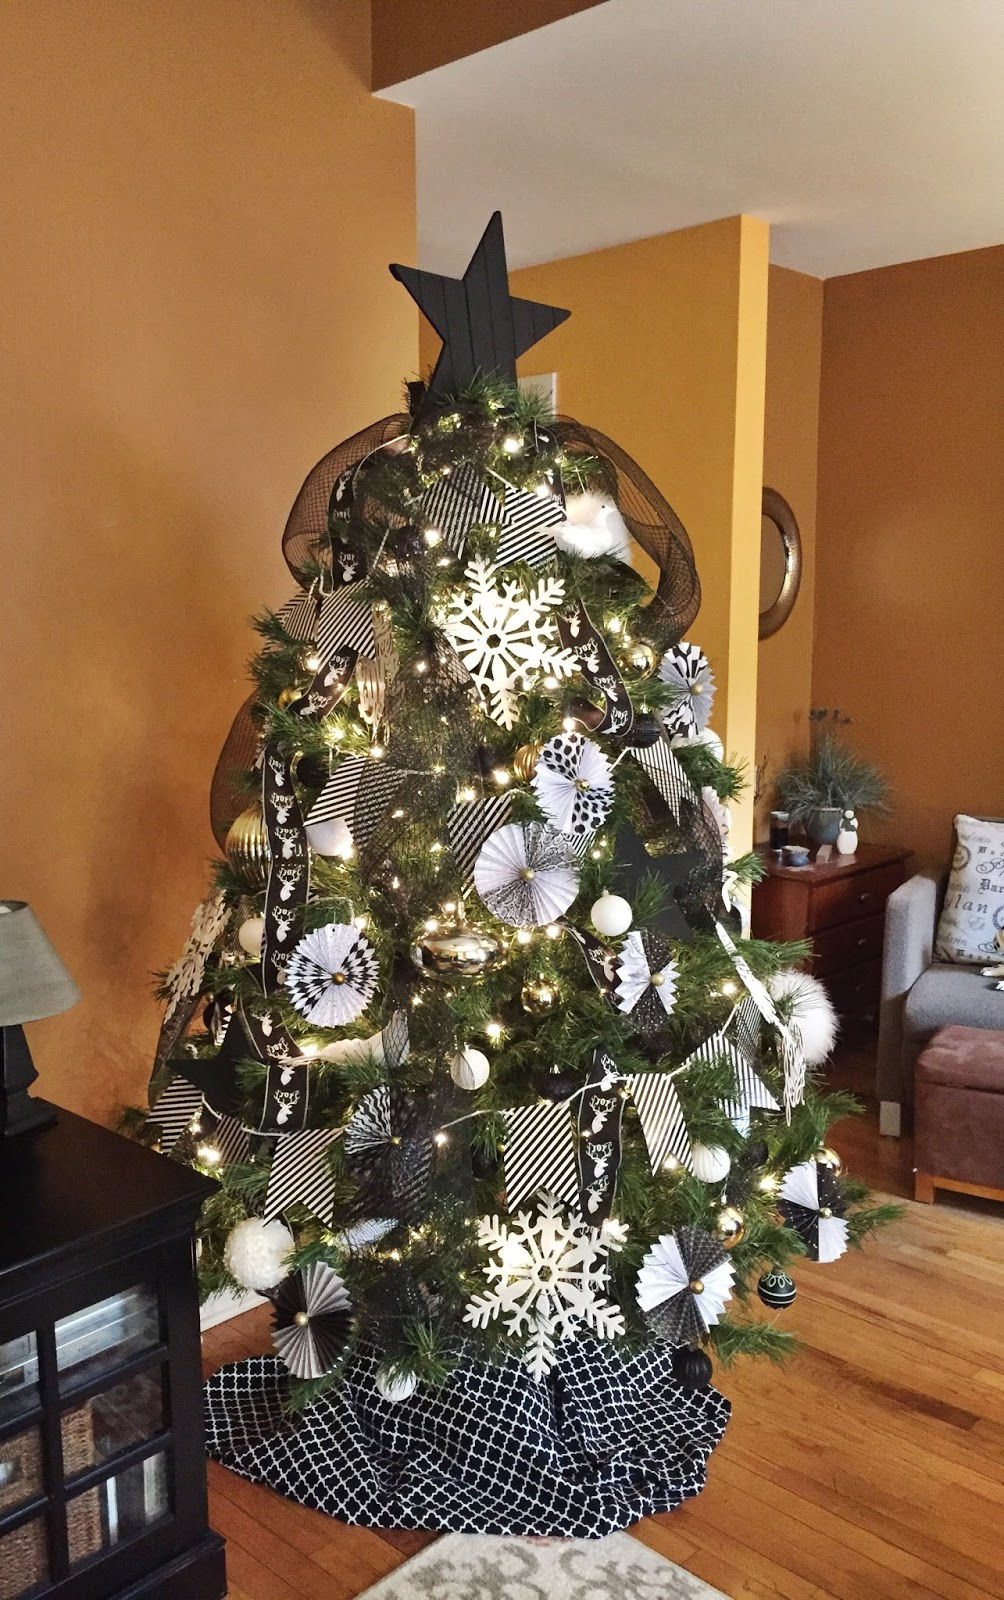 Color schemes for christmas trees - Well Thats True For This Tree Despite Its Untraditional Color Scheme It S Brimming With Holiday Cheer